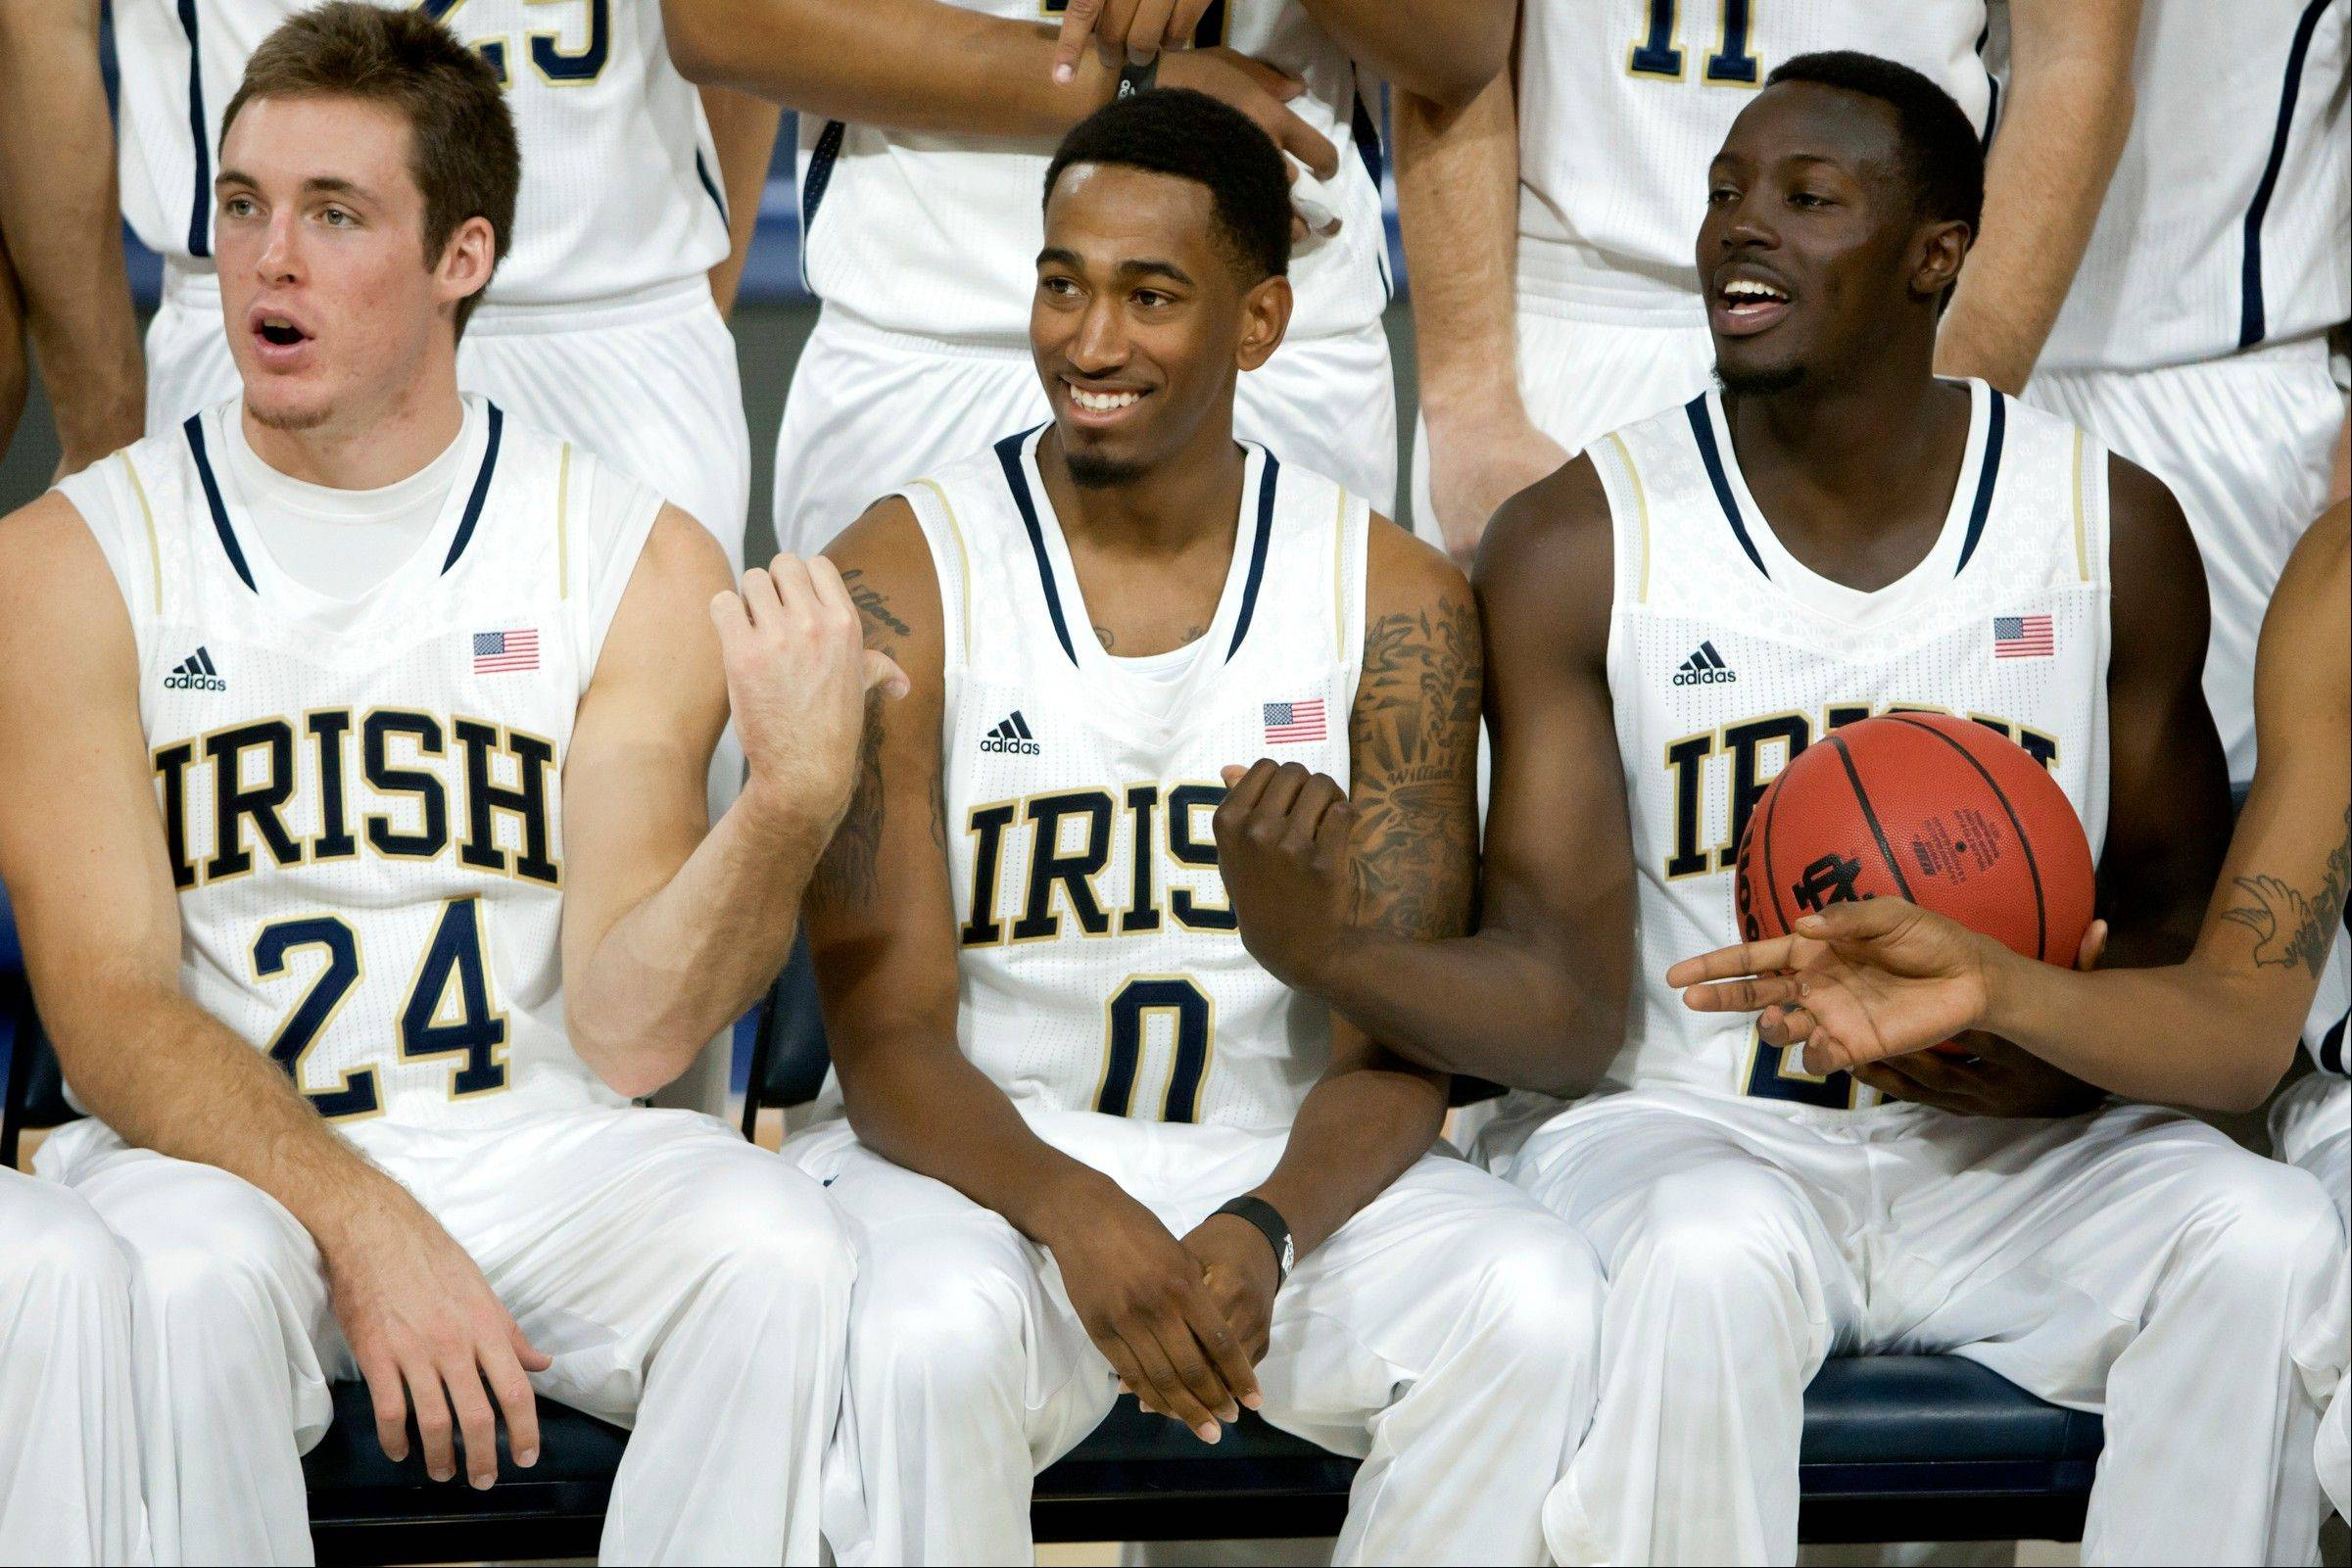 Notre Dame's Pat Connaughton, left, and Jerian Grant ask their sports information director to give Eric Atkins, center, a basketball for their official photograph during team's media day Wednesday in South Bend, Ind.